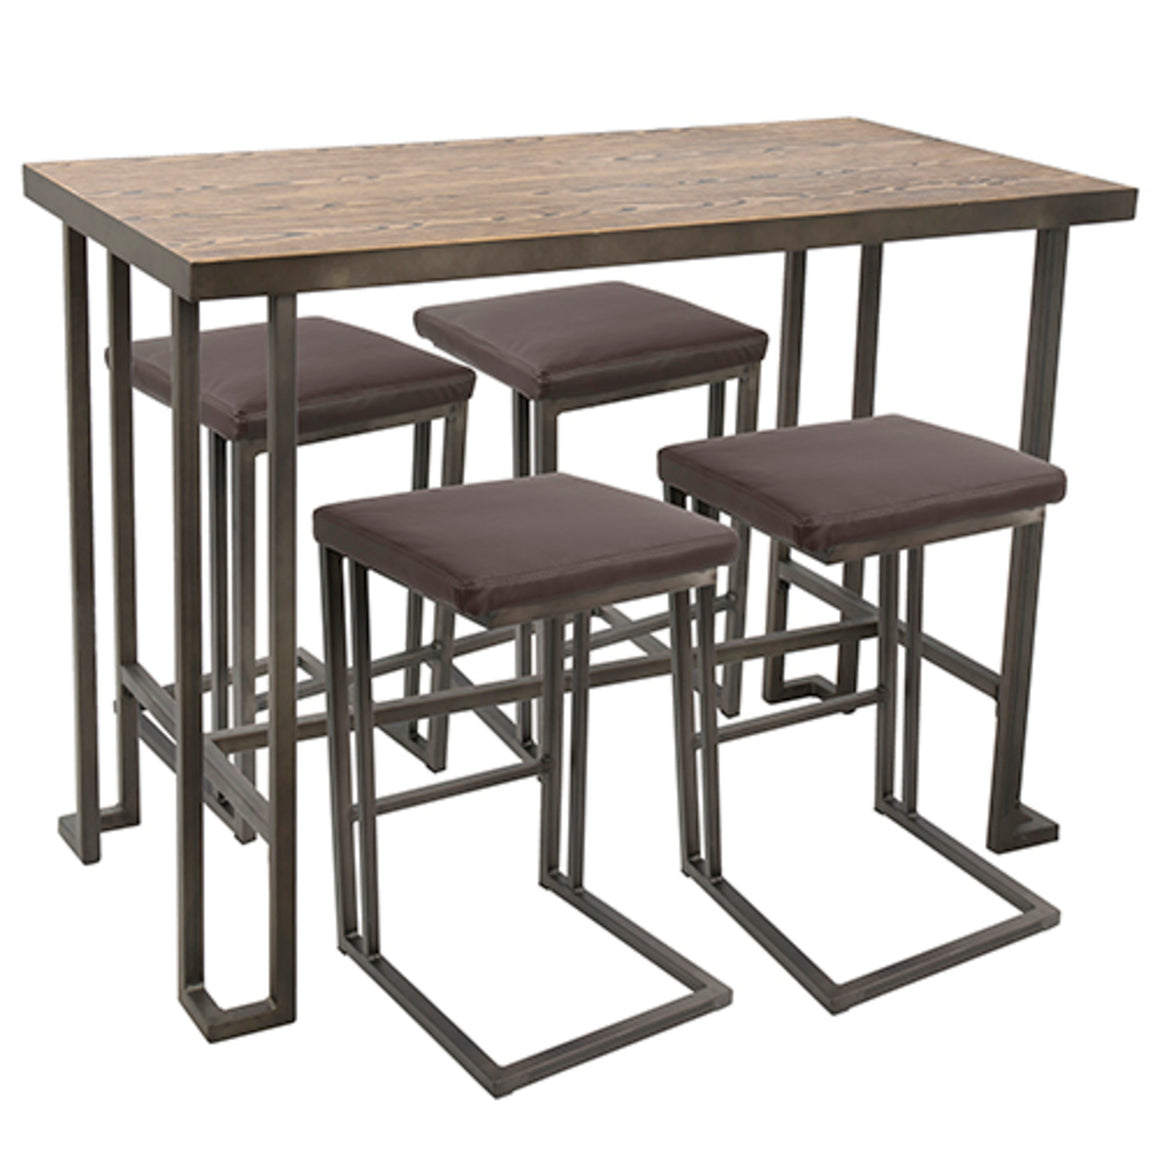 Roman 5-Piece Industrial Counter Height Dining Set in Antique and Brown by LumiSource